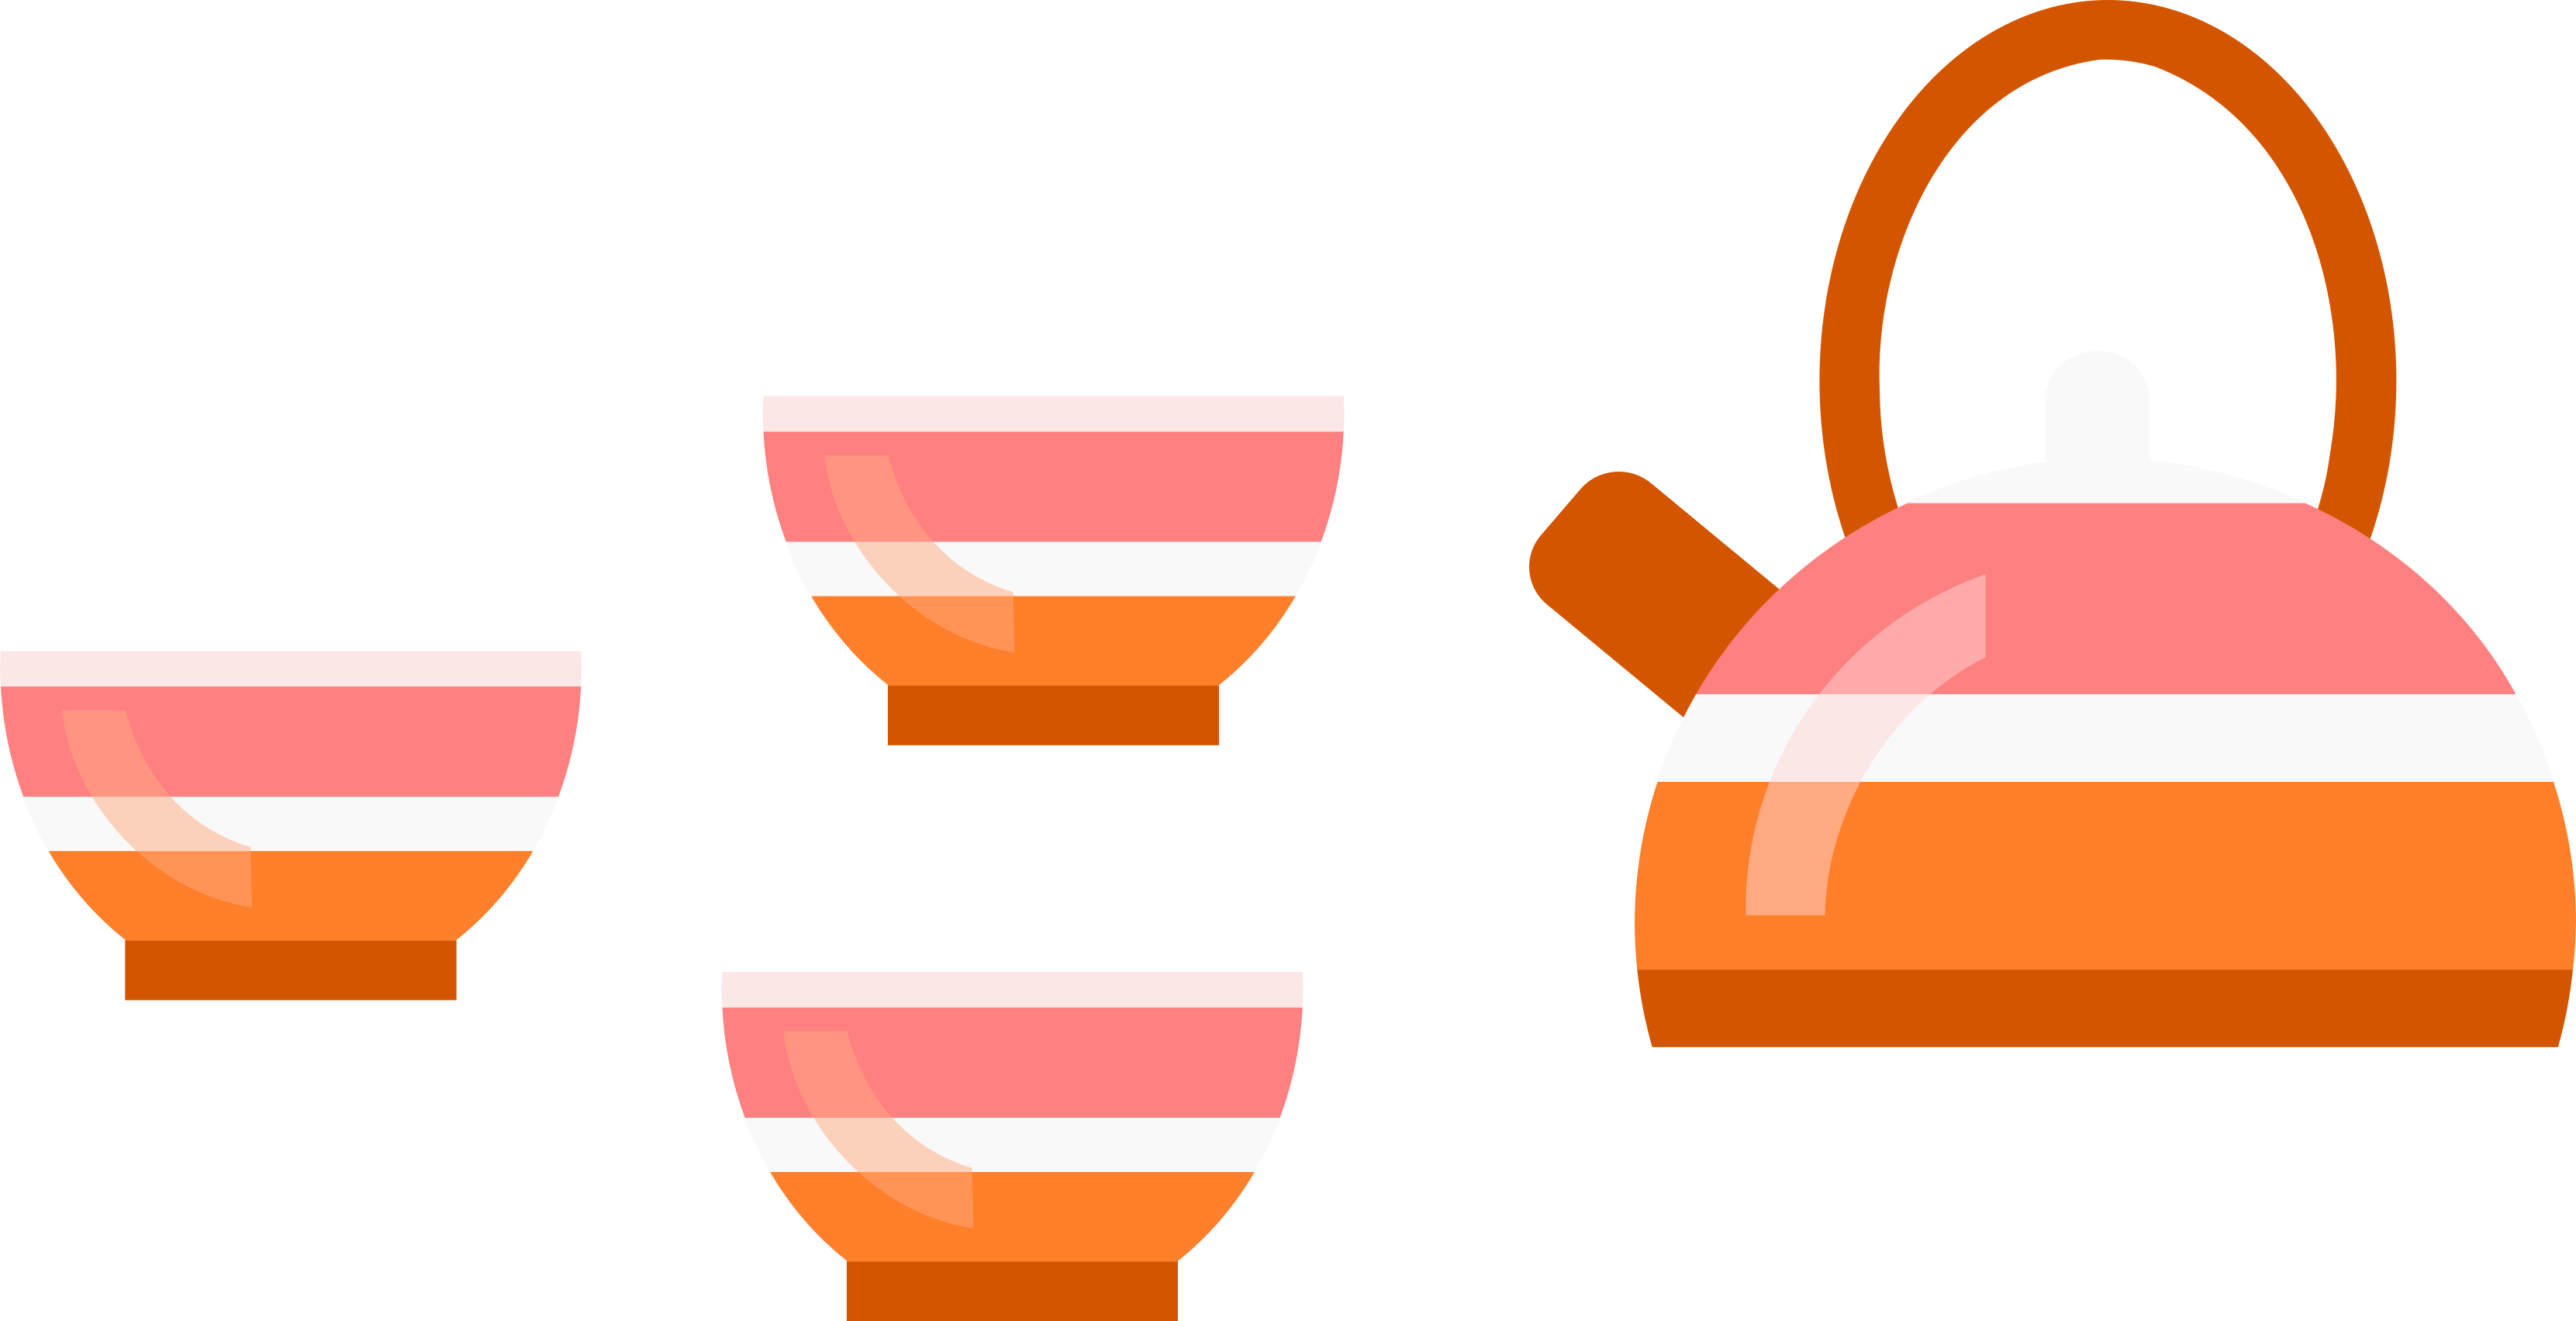 Image of Teapot and Cups